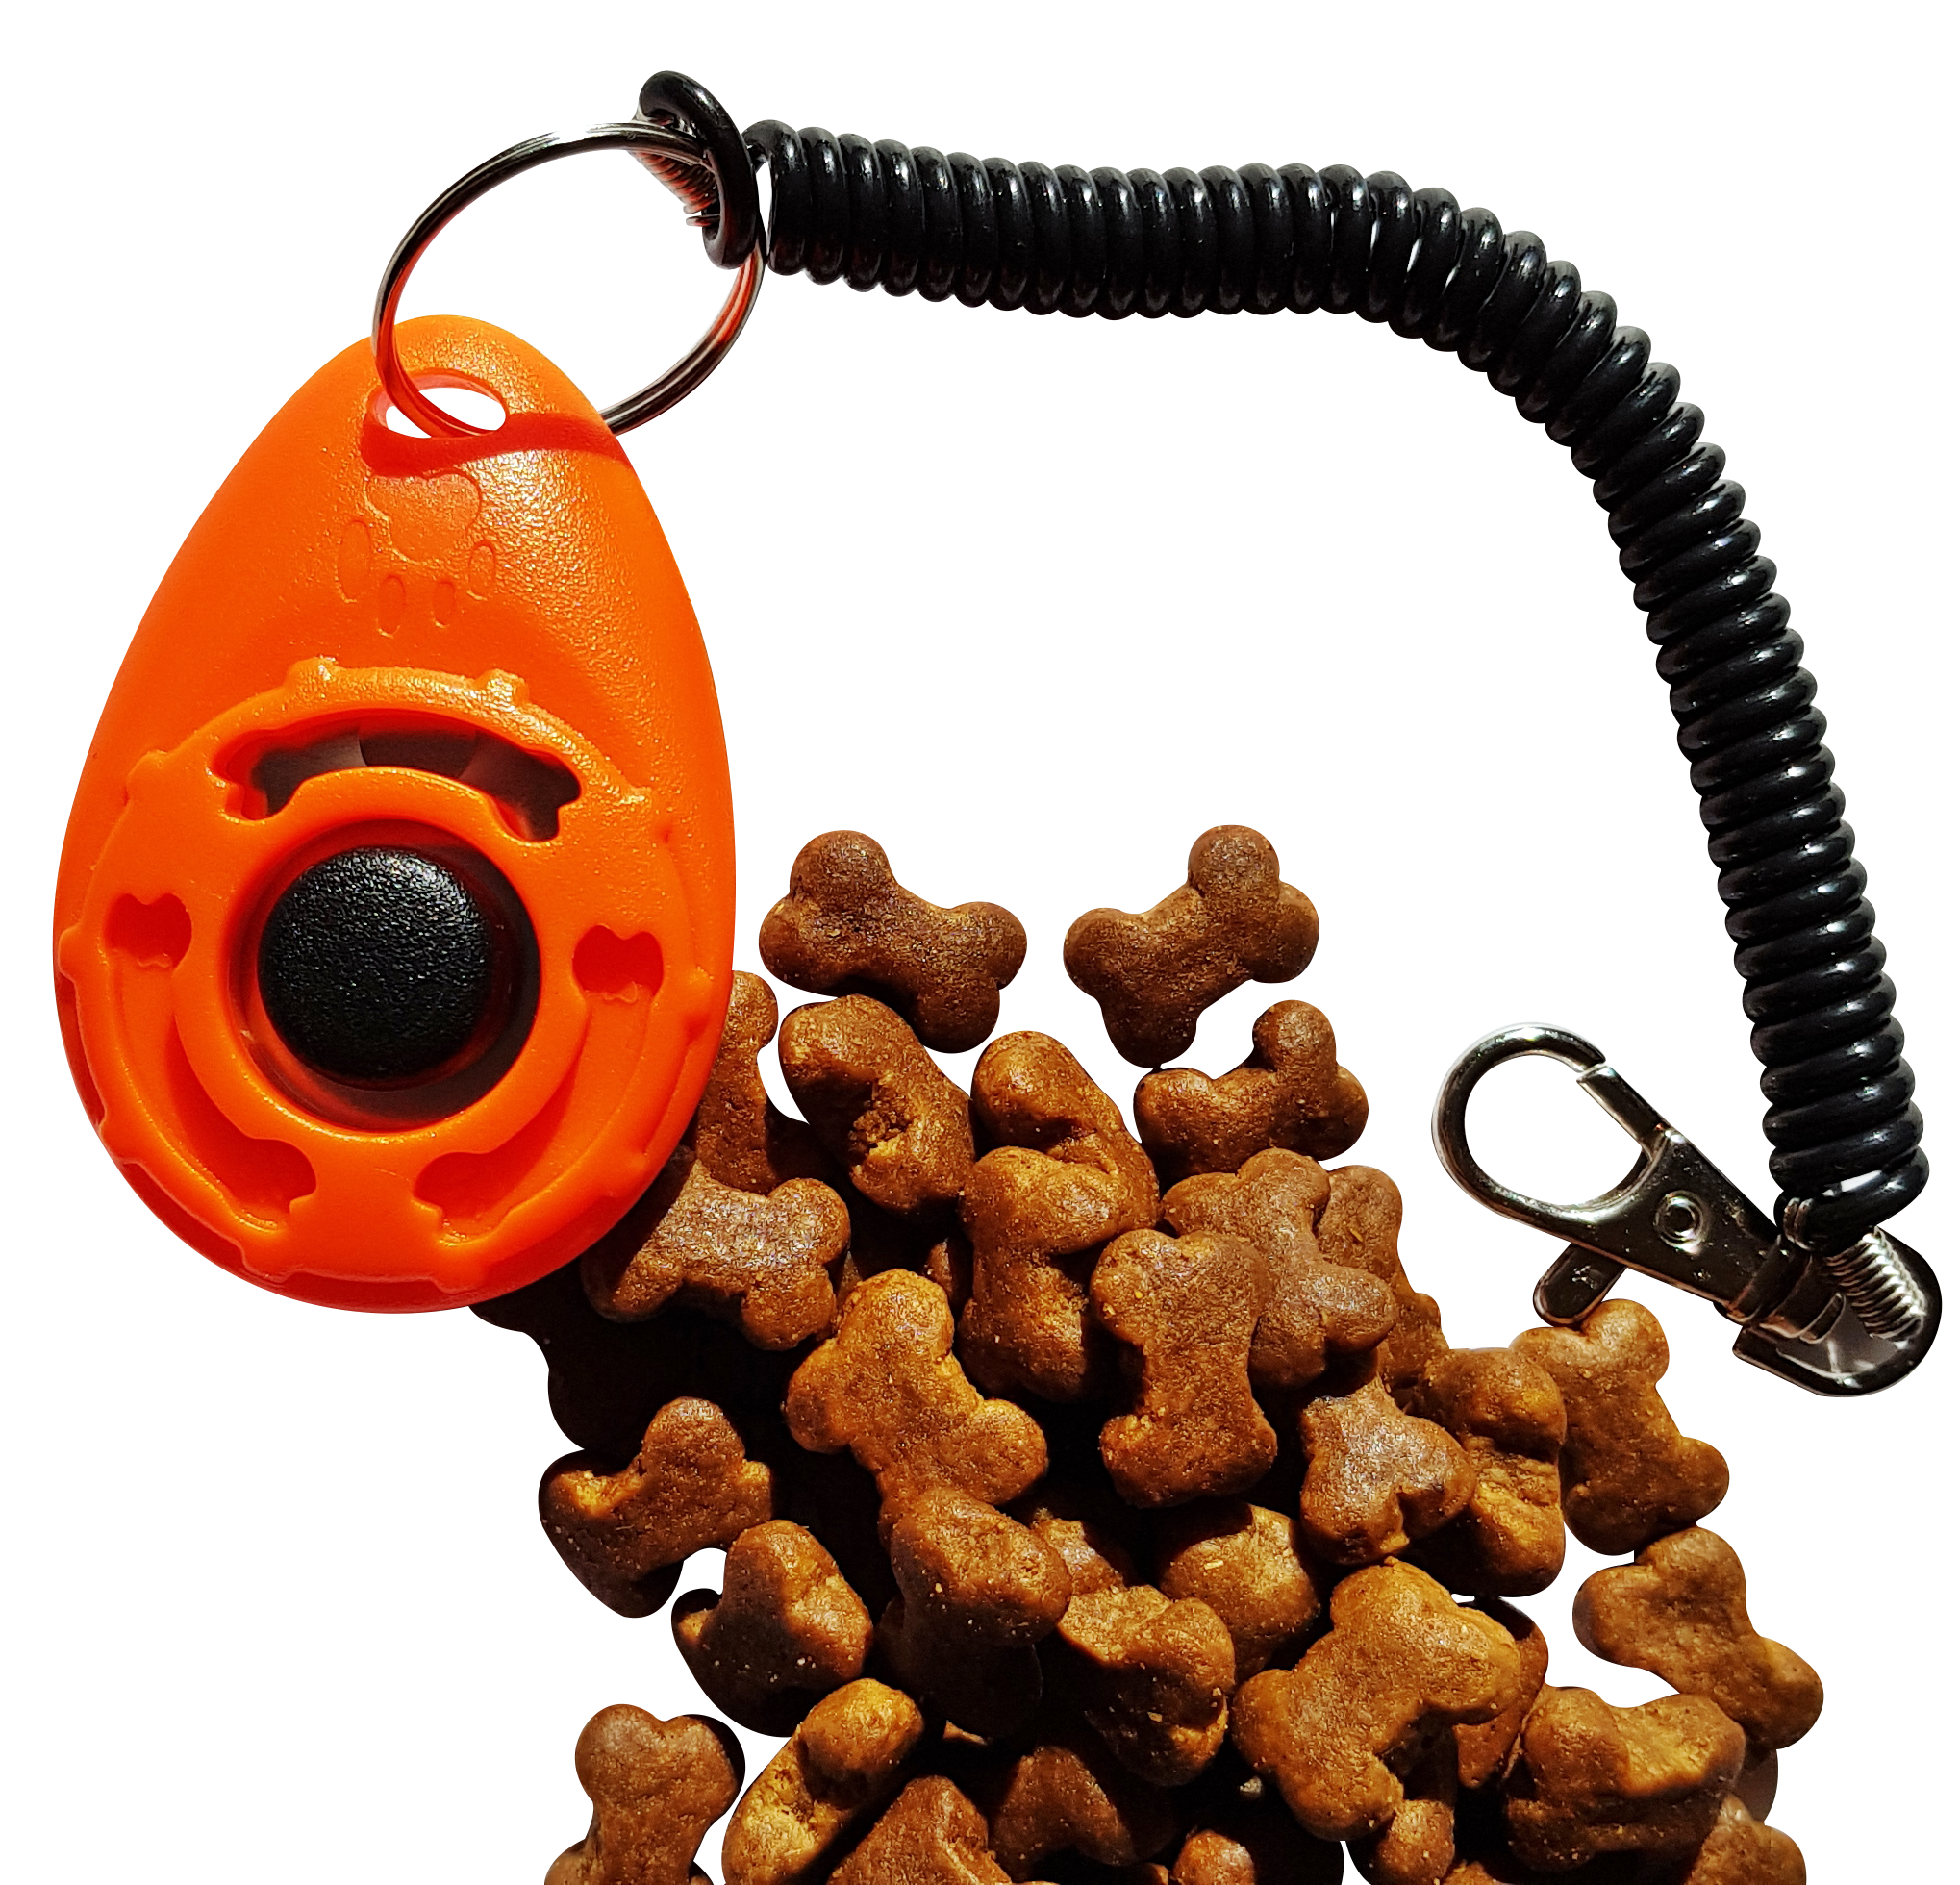 Clicker and Grain Free Poultry Treats